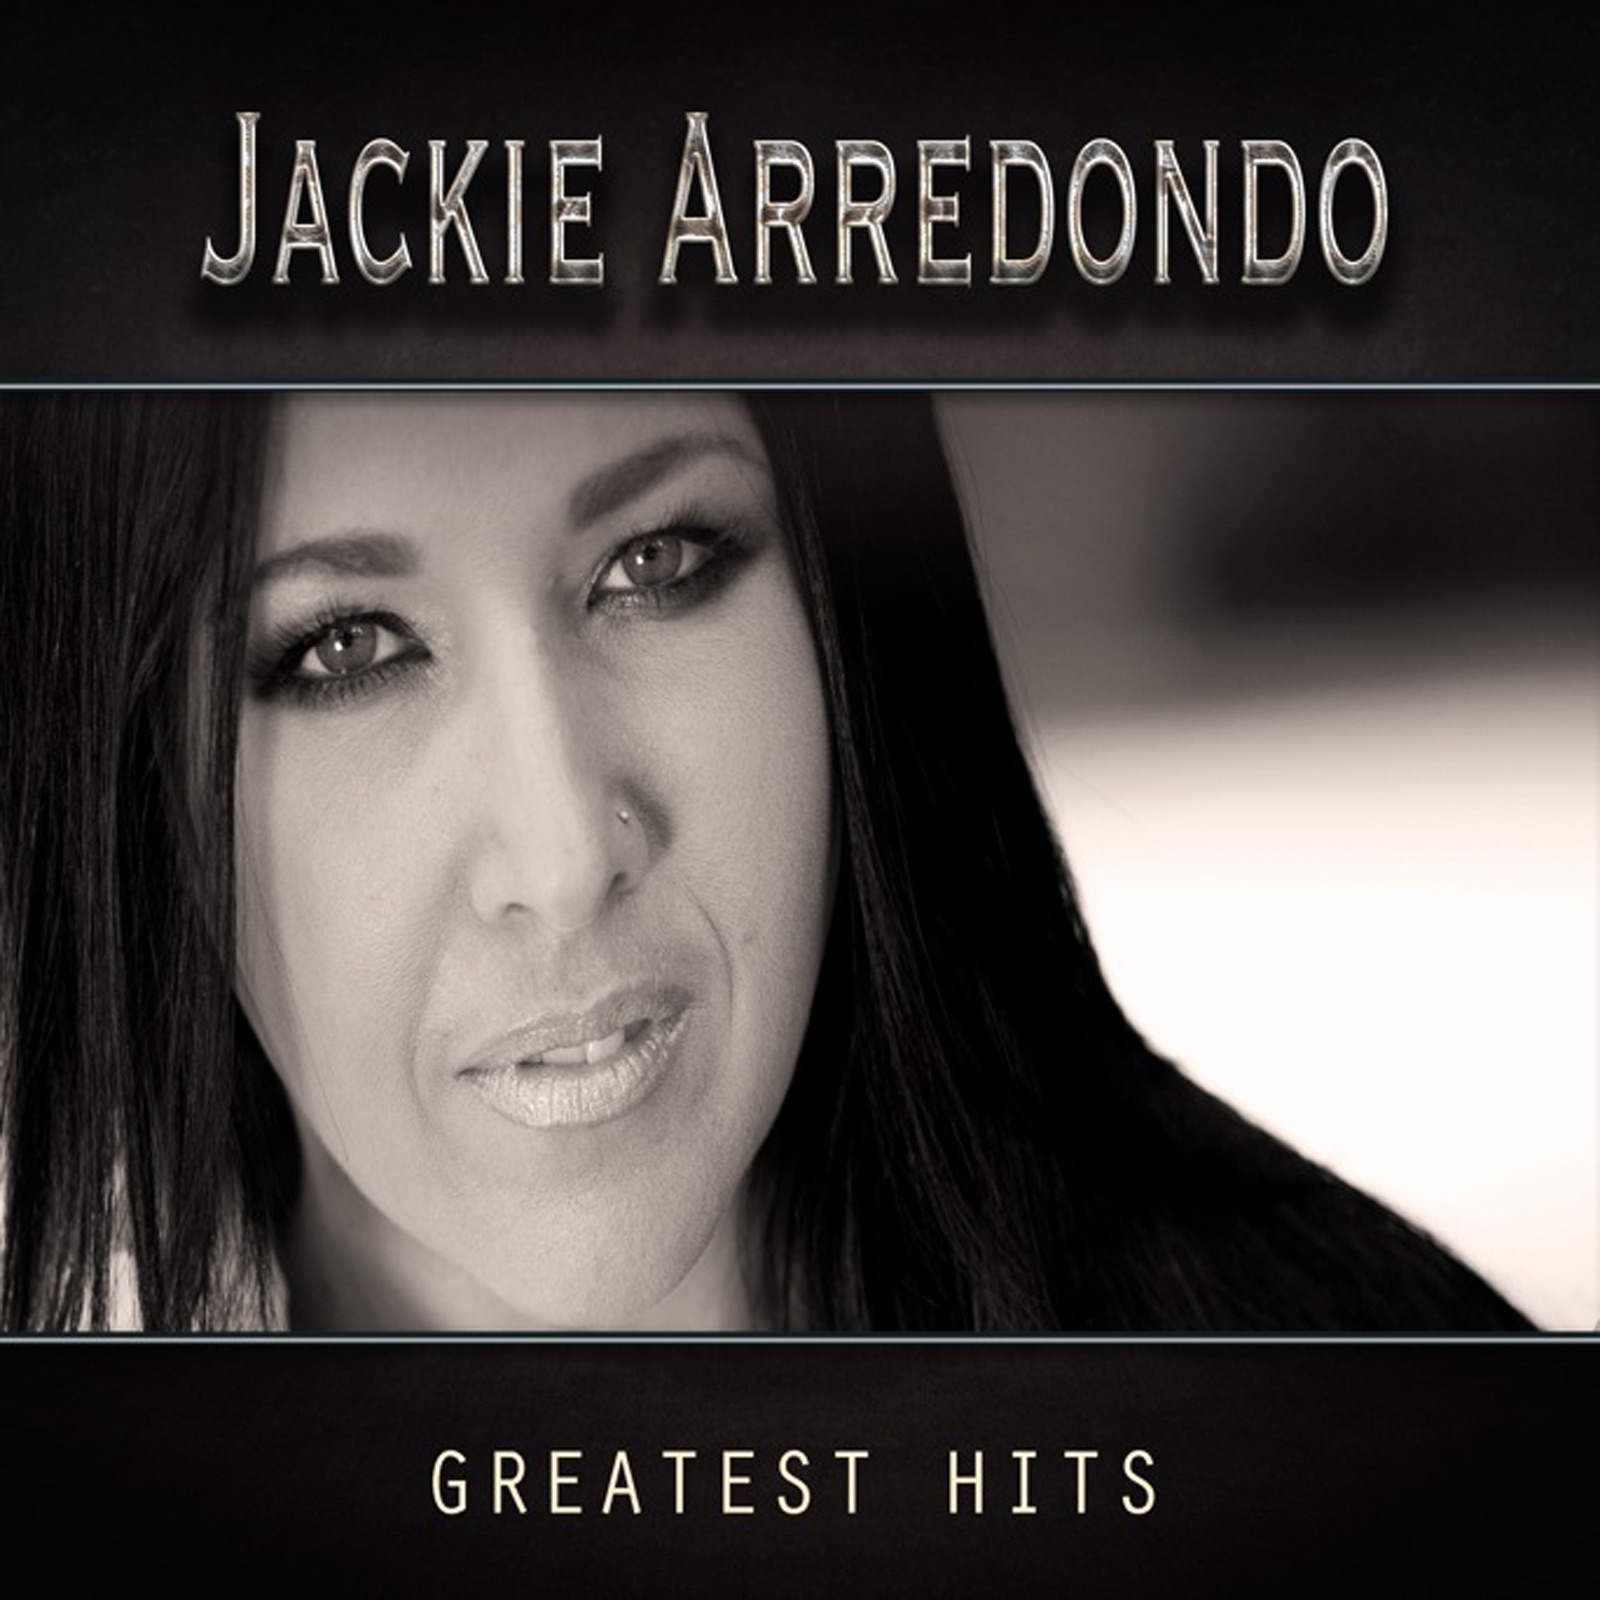 MP3 Songs Online:♫ El Hombre Perfecto - Jackie Arredondo album Greatest Hits. Country,Pop Latino,Music,Latino,Contemporary Country listen to music online free without downloading.